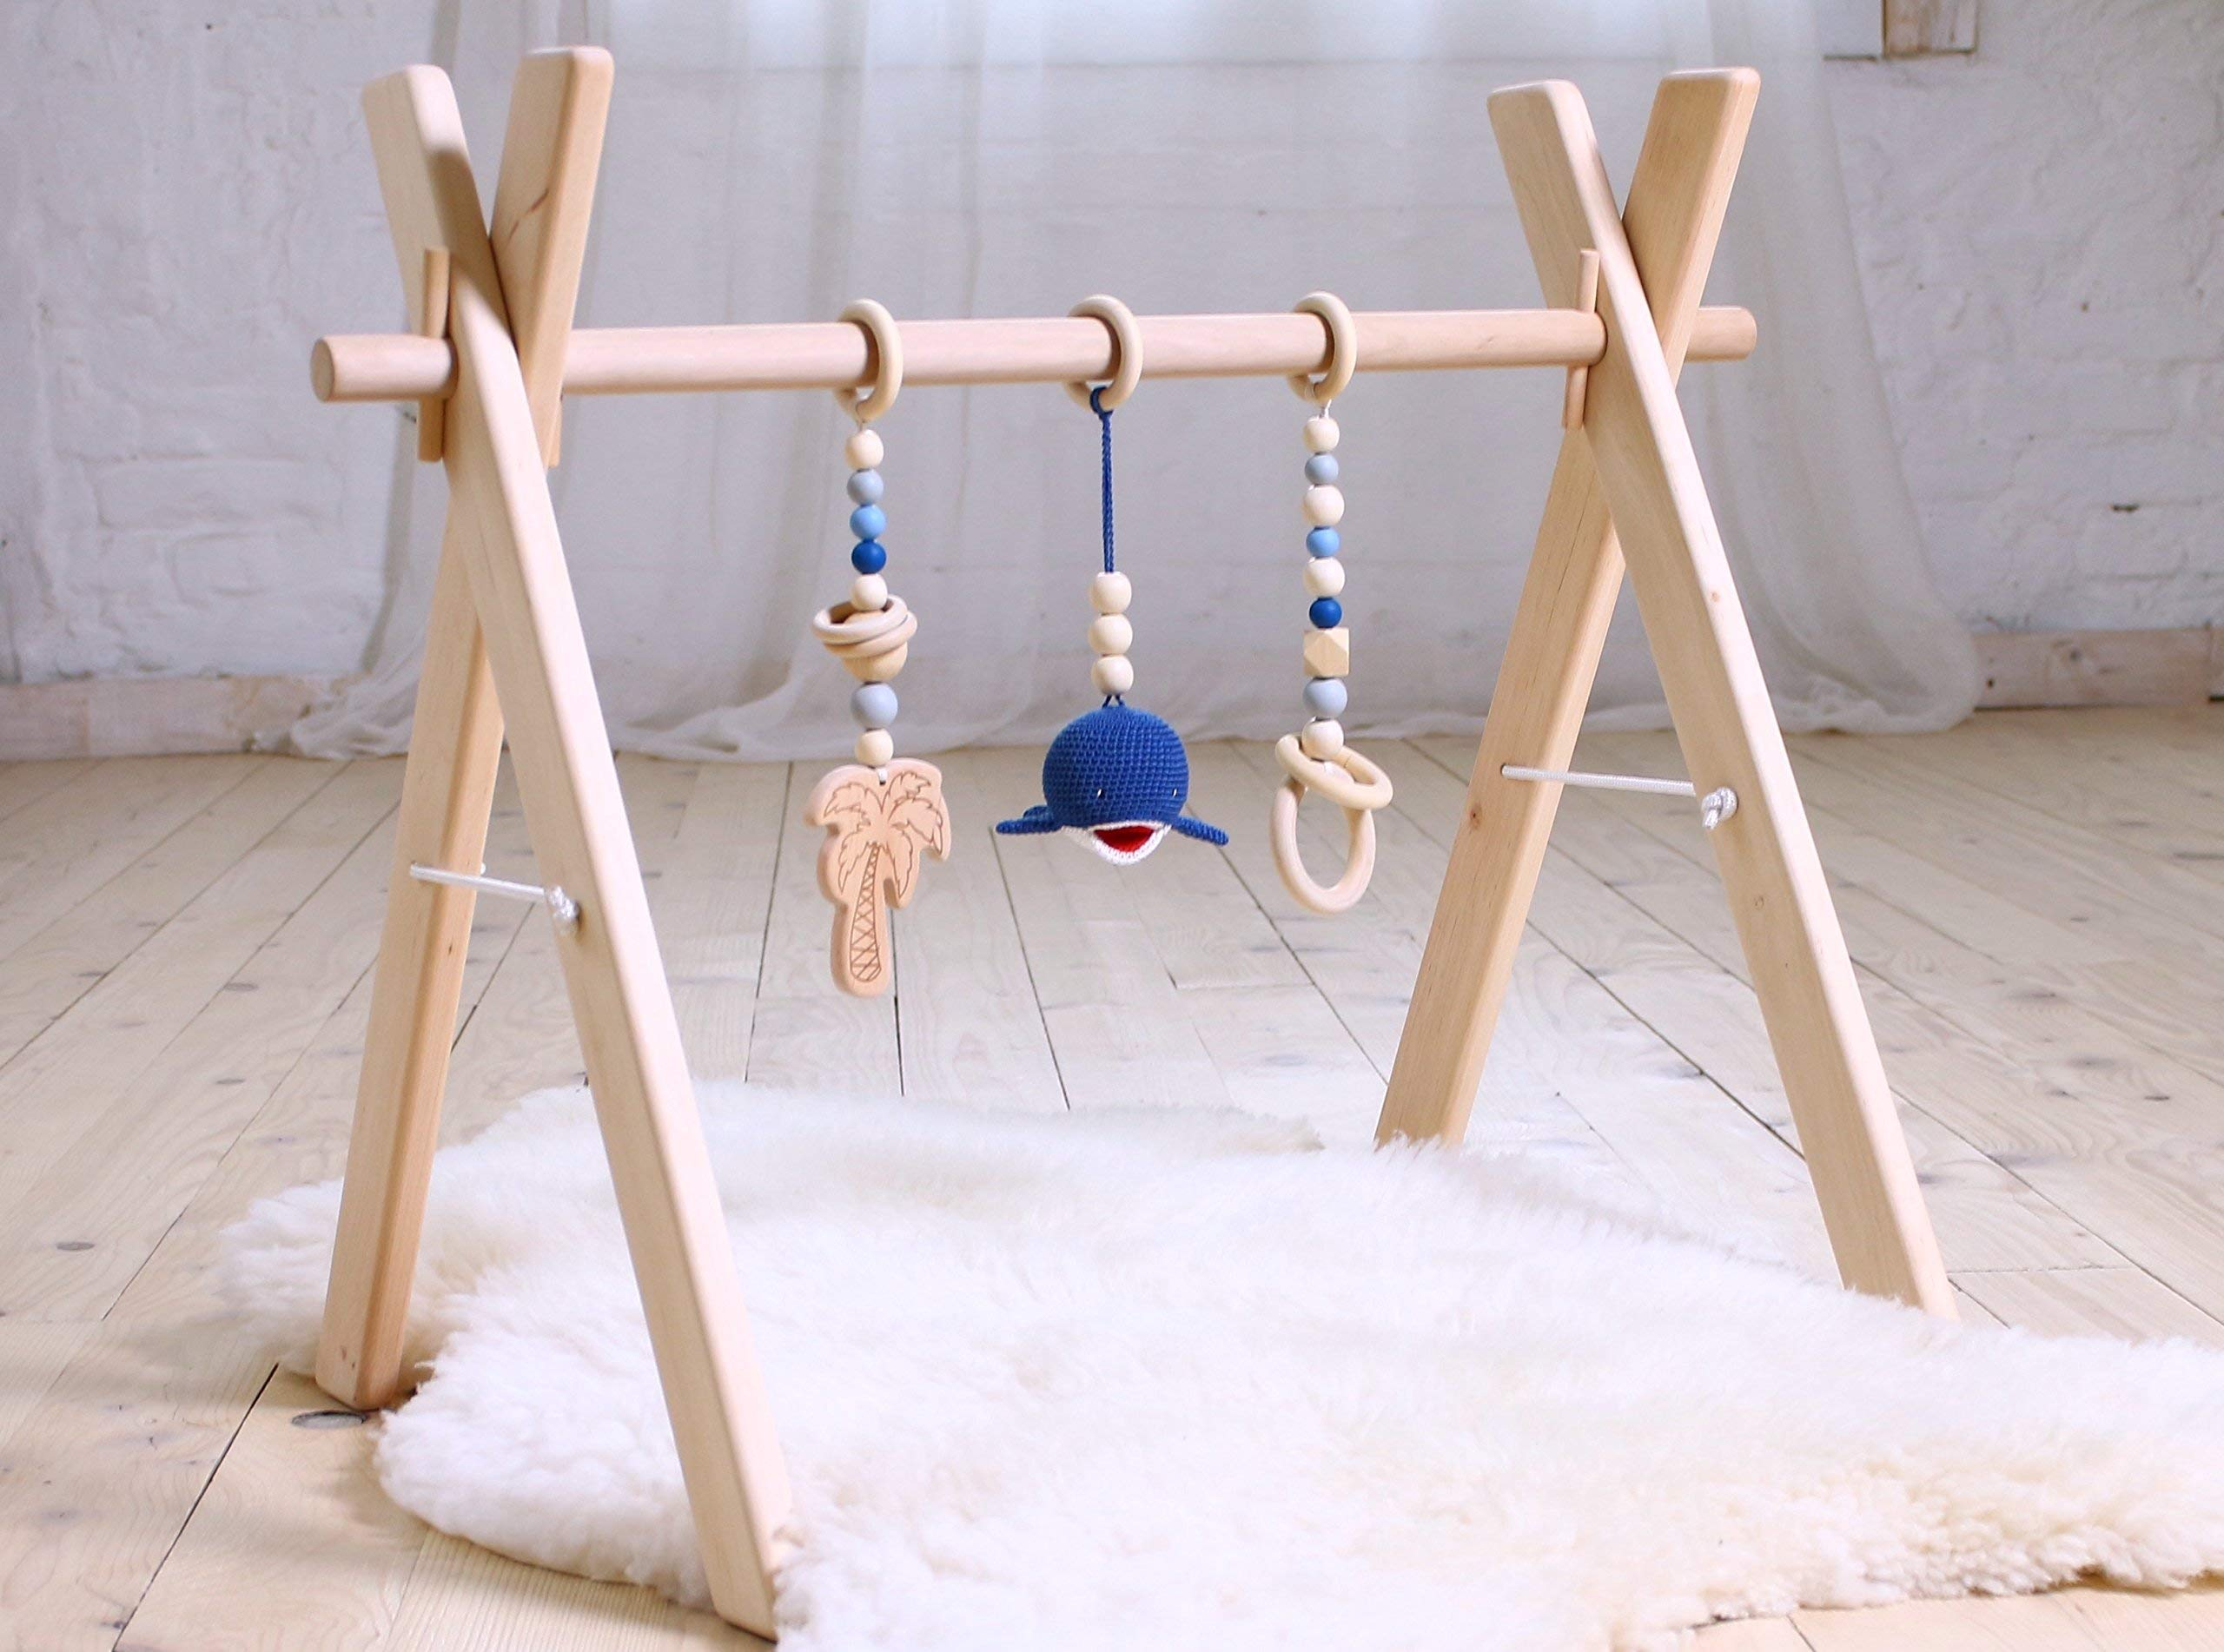 Wood Baby gym with three mobiles: Palm, Whale, Ring. Handmade in eastern Europe. Infant activity gym wooden. Natural wood baby: Navy & gray.